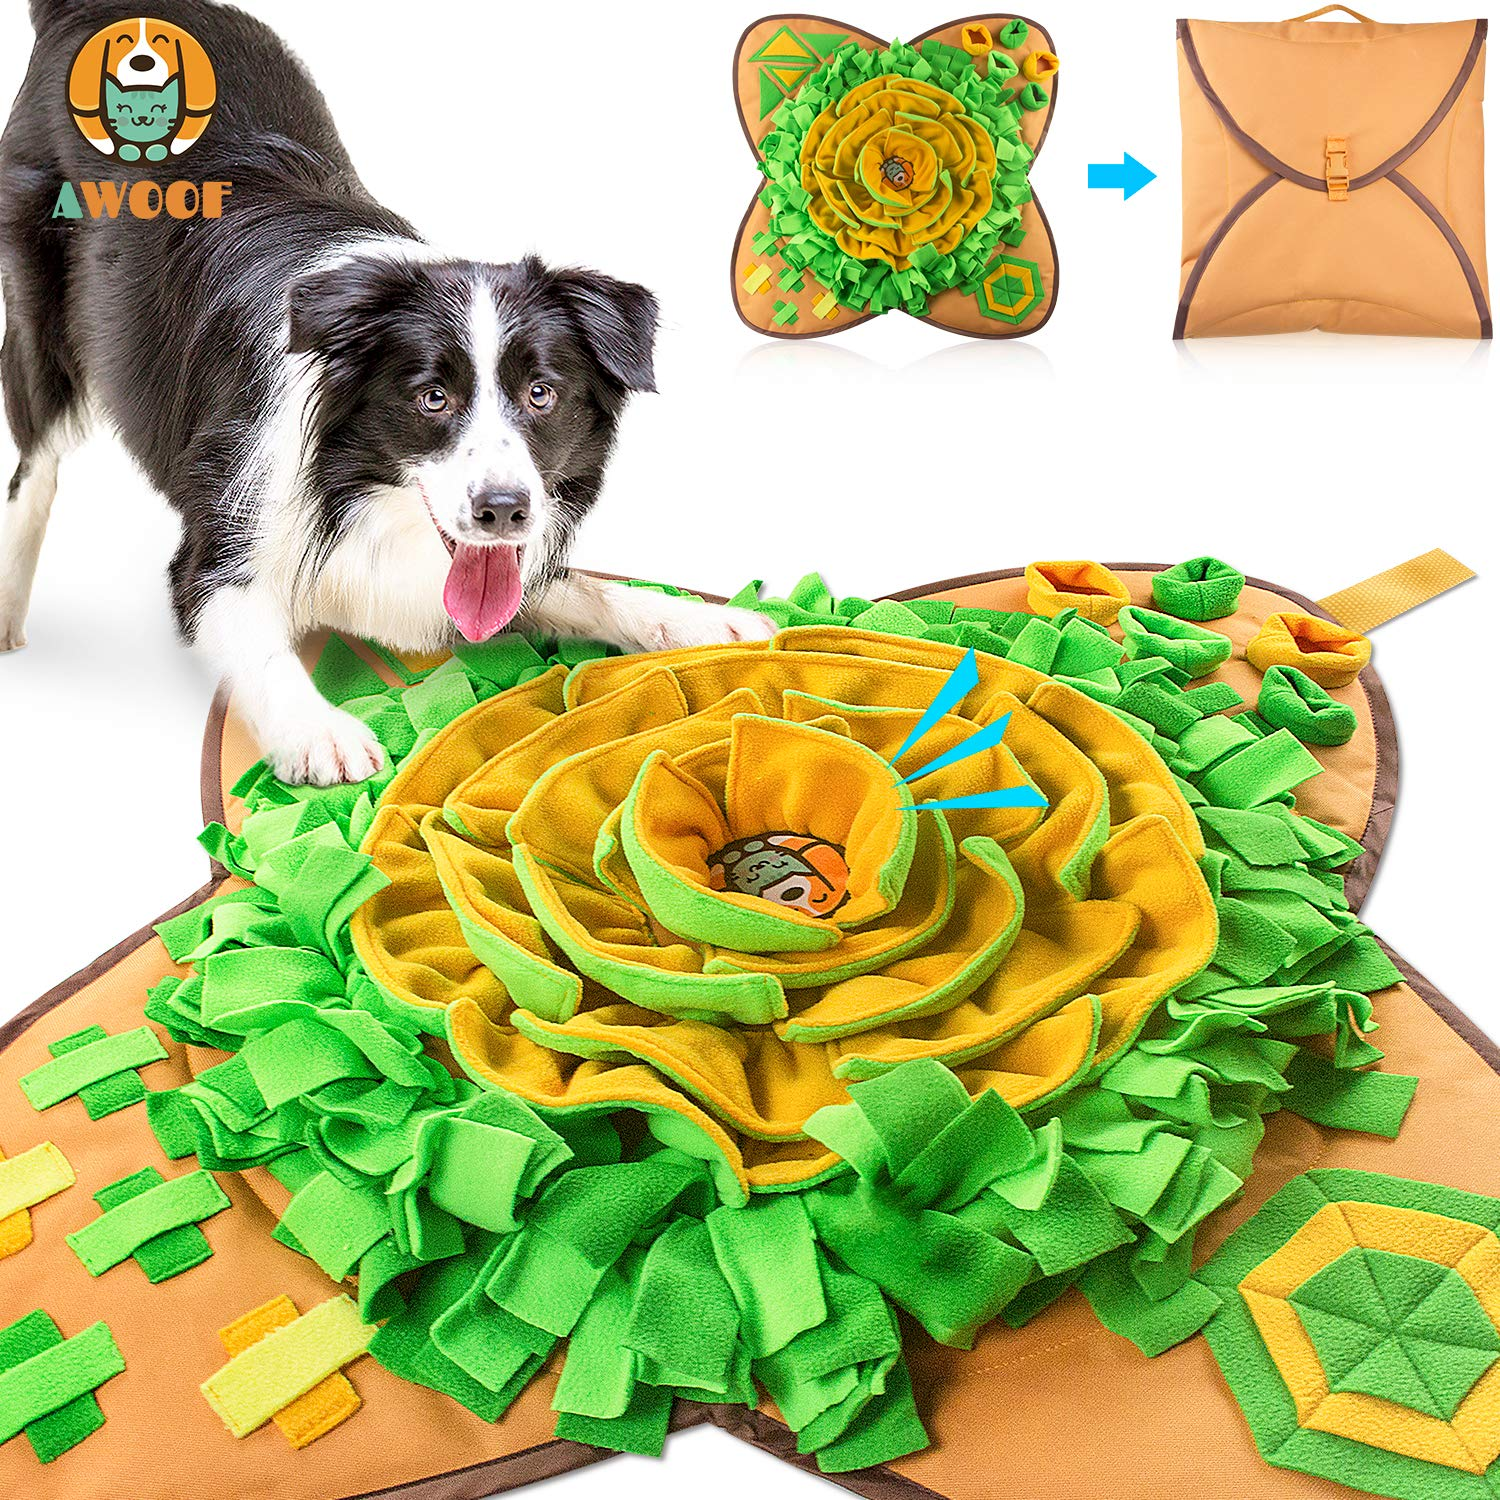 AWOOF Snuffle Mat Pet Dog Feeding Mat, Durable Indestructible Interactive Puzzle Dog Toys Encourages Natural Foraging Skills by AWOOF